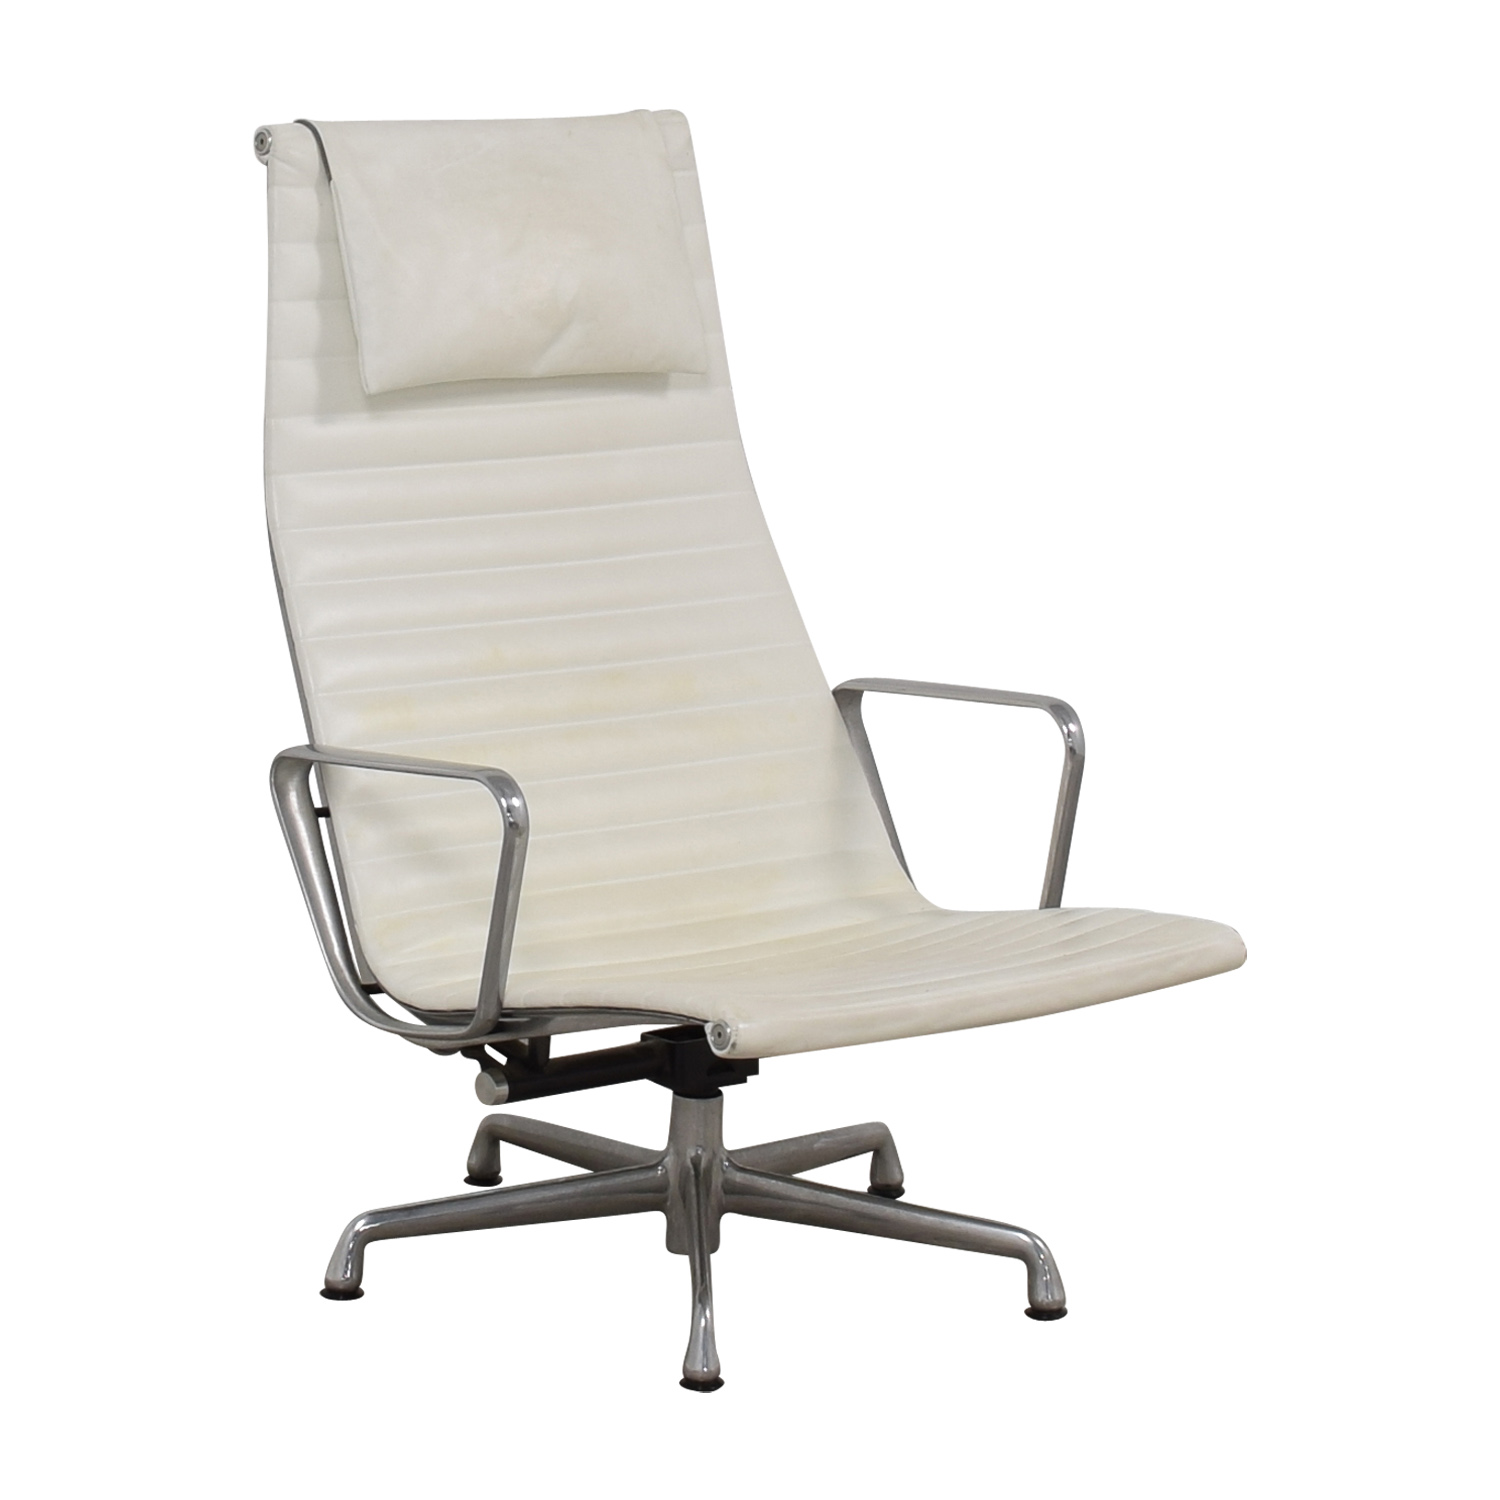 Herman Miller Herman Miller Eames Aluminum Group White Lounge Chair dimensions